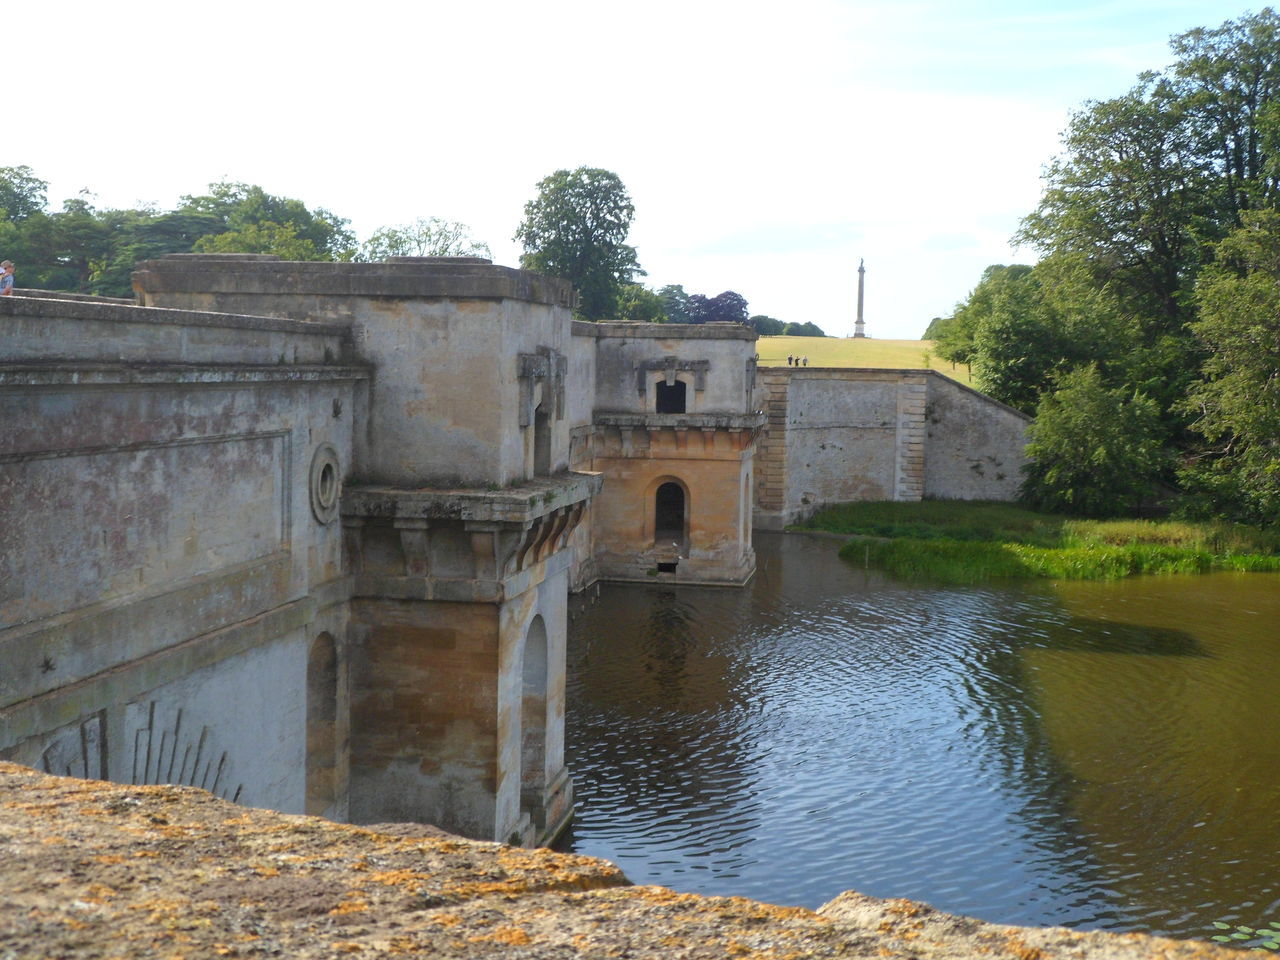 water, architecture, built structure, tree, history, no people, sky, outdoors, day, building exterior, nature